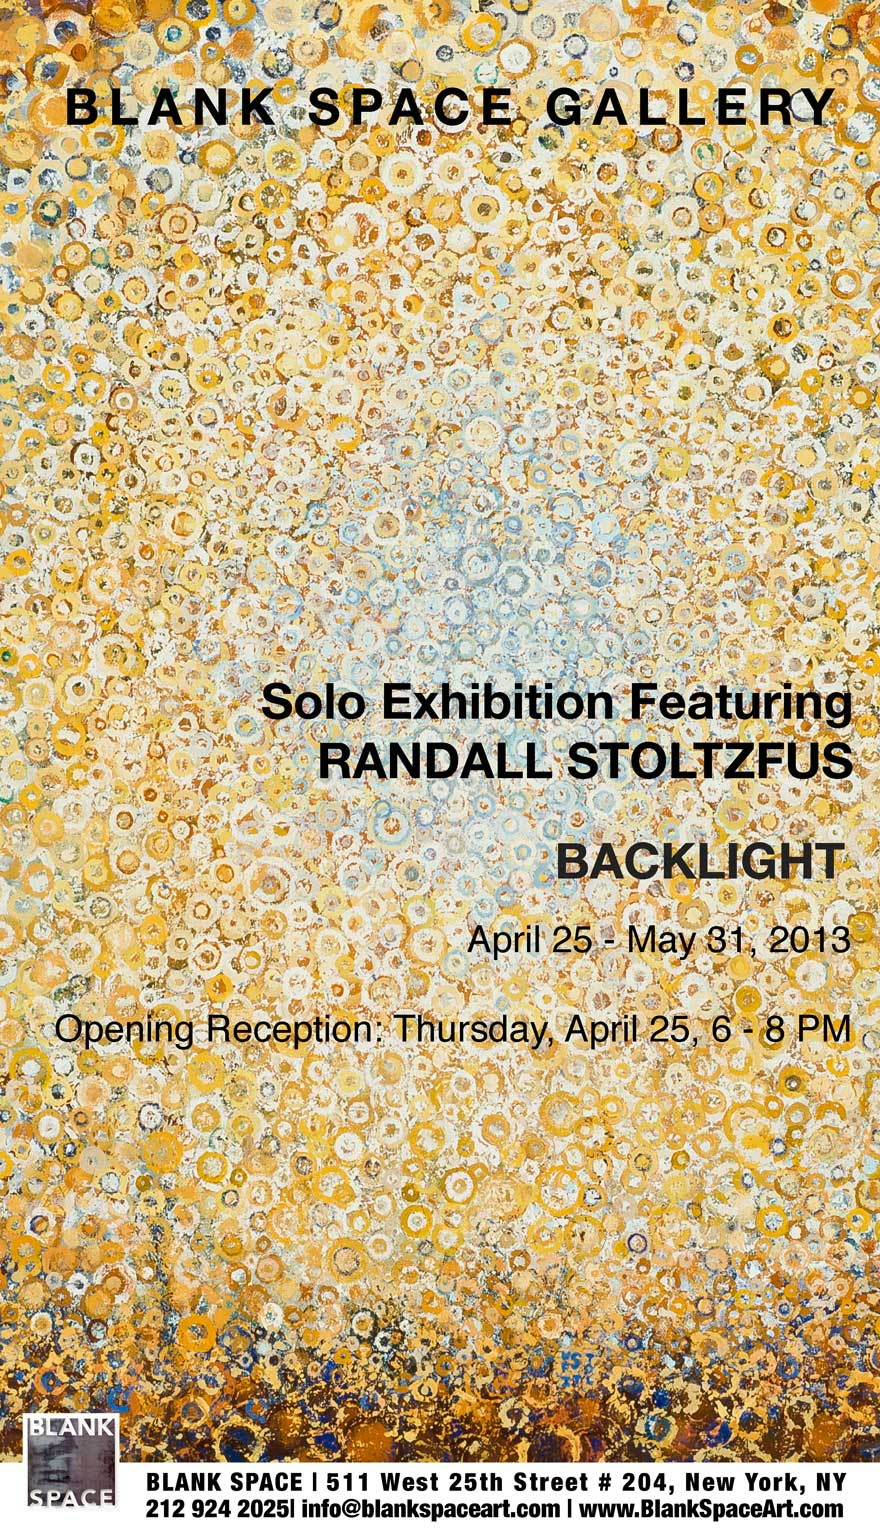 Poster for the Randall Stoltzfus Backlight Exhibit at Blank space Gallery